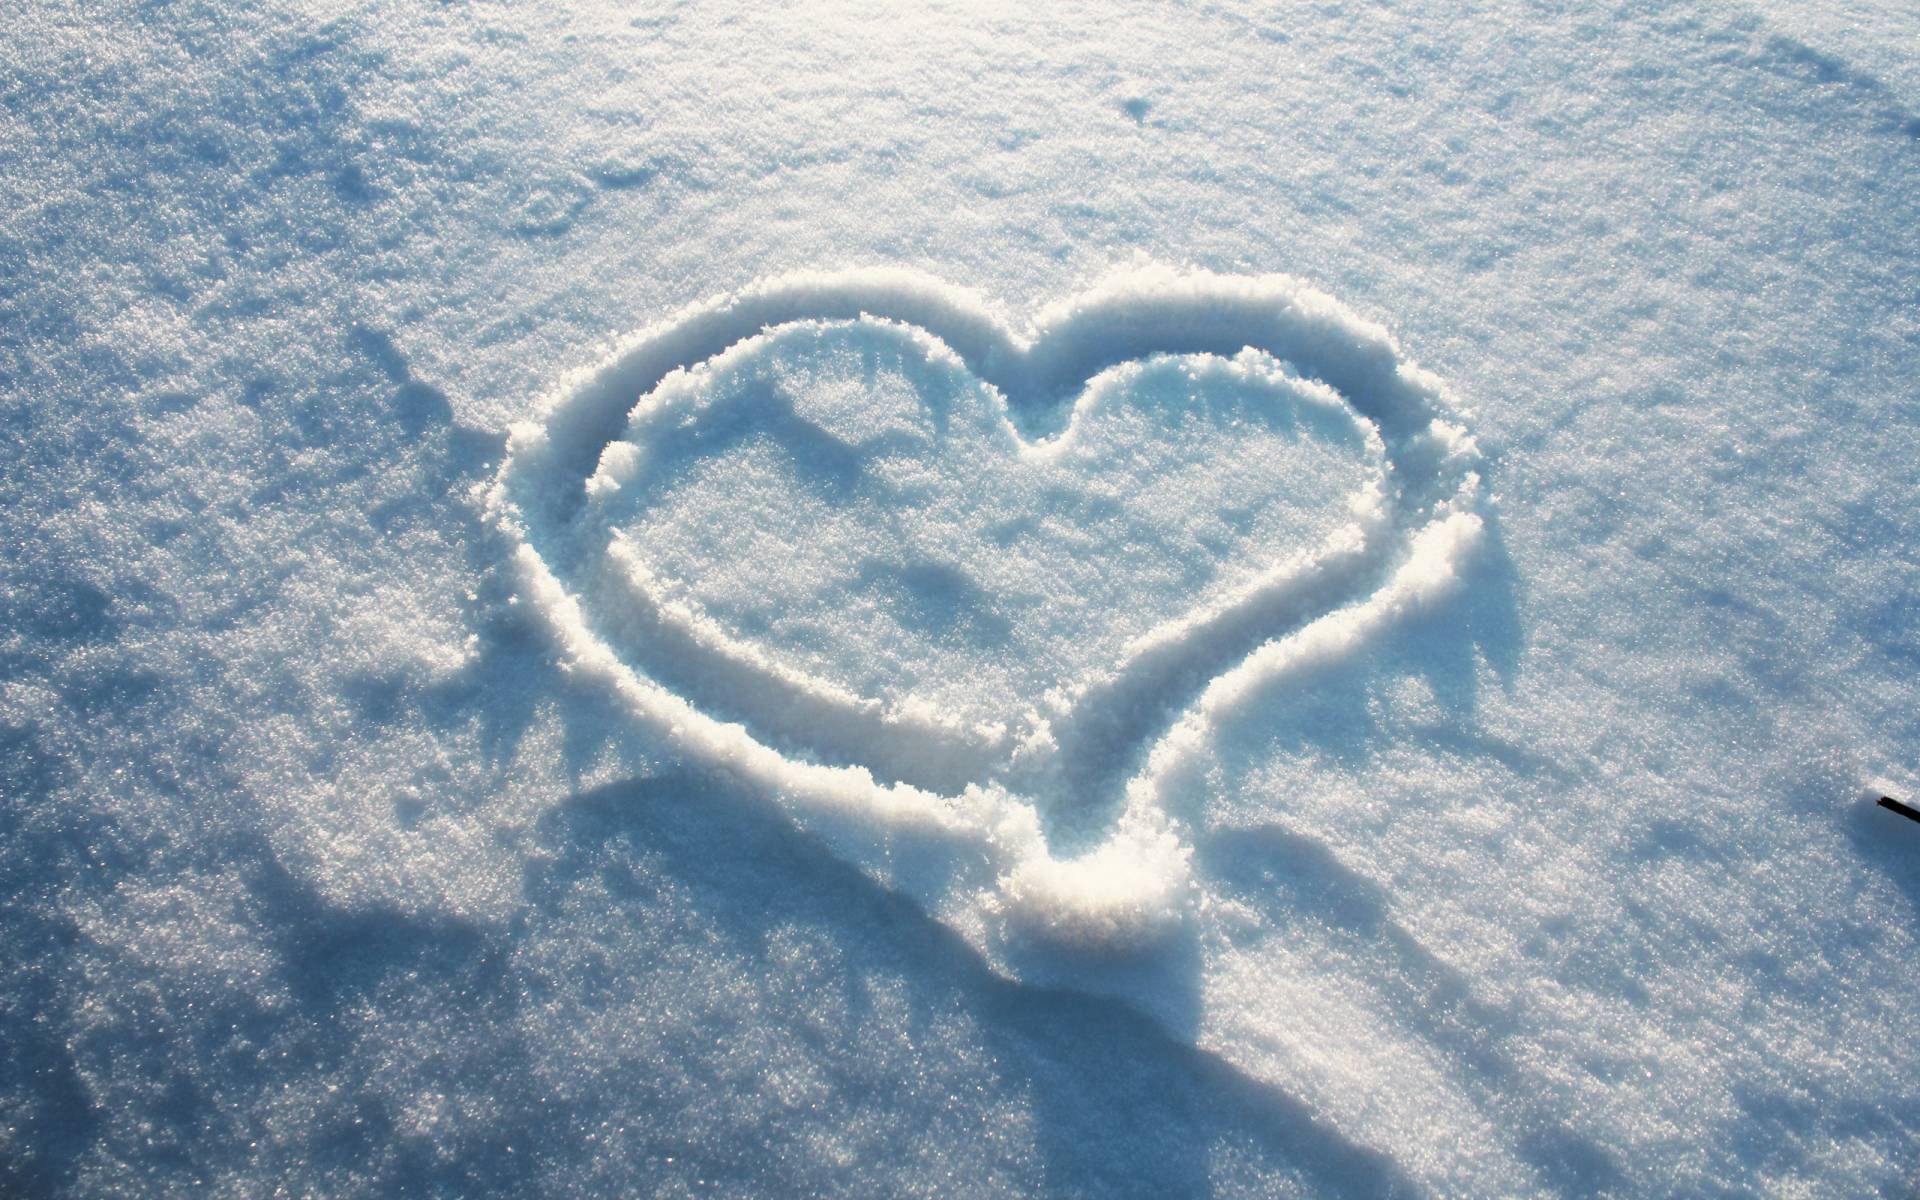 Winter Love Wallpapers HD Wallpaper of Love   hdwallpaper2013com 1920x1200